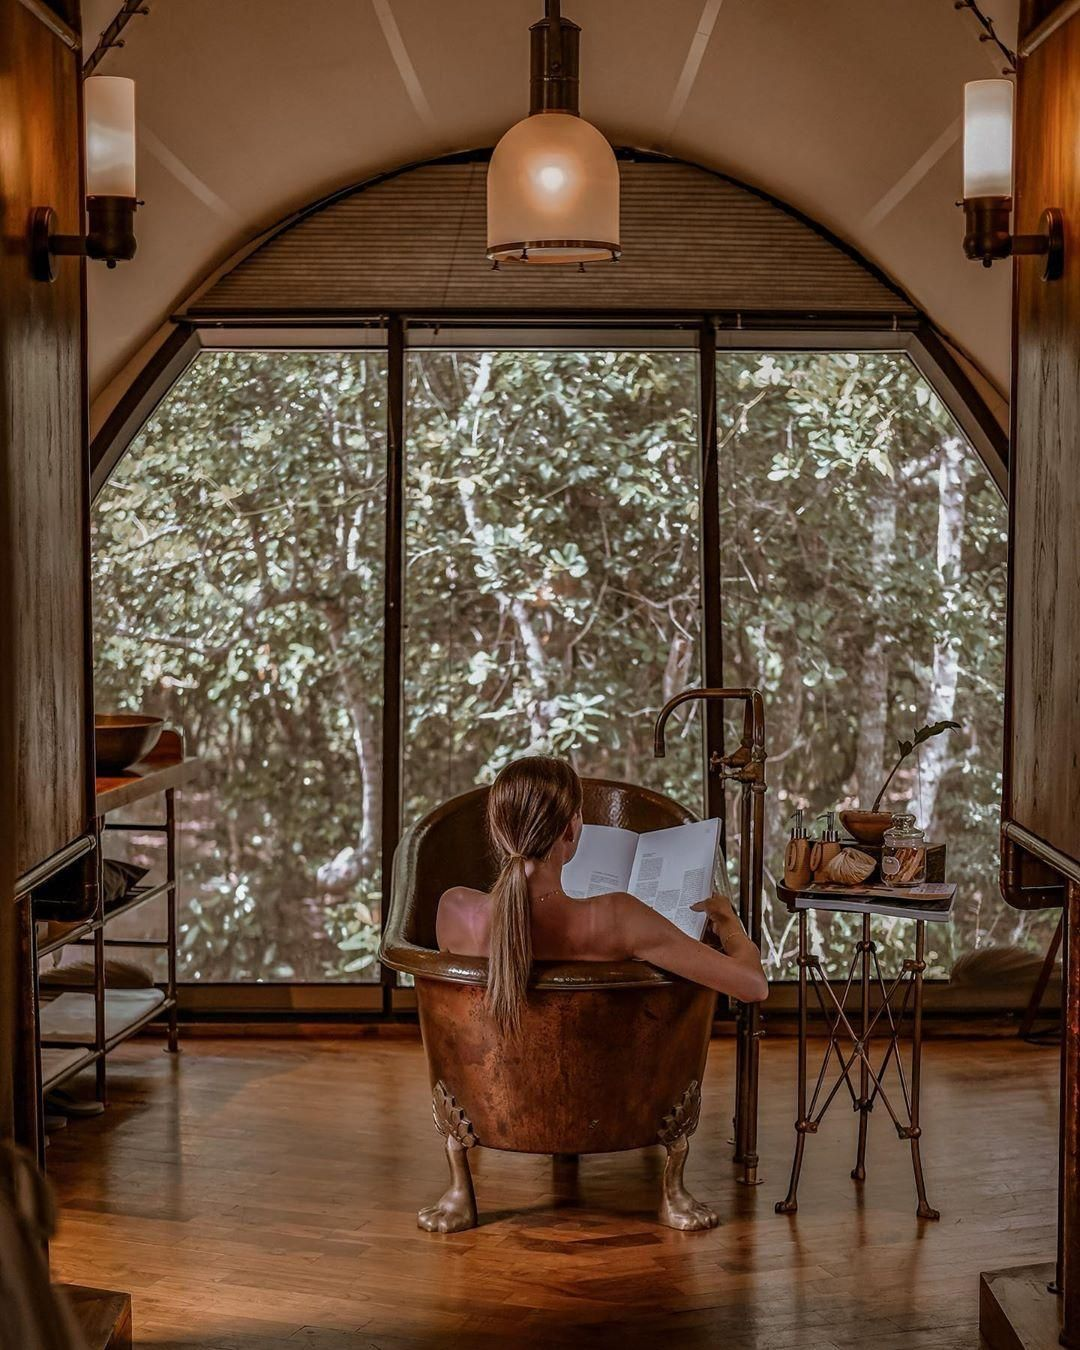 Luxury in the wilderness 🐆 . 📍Wild Coast Tented Lodge - Yala #travel #trip #travelphotography #adventure #paradiceisland #trip #roadtrip #adventure #siliene #traveling #adventuretravel #aroundtheworld #beautifulplace #savetourism